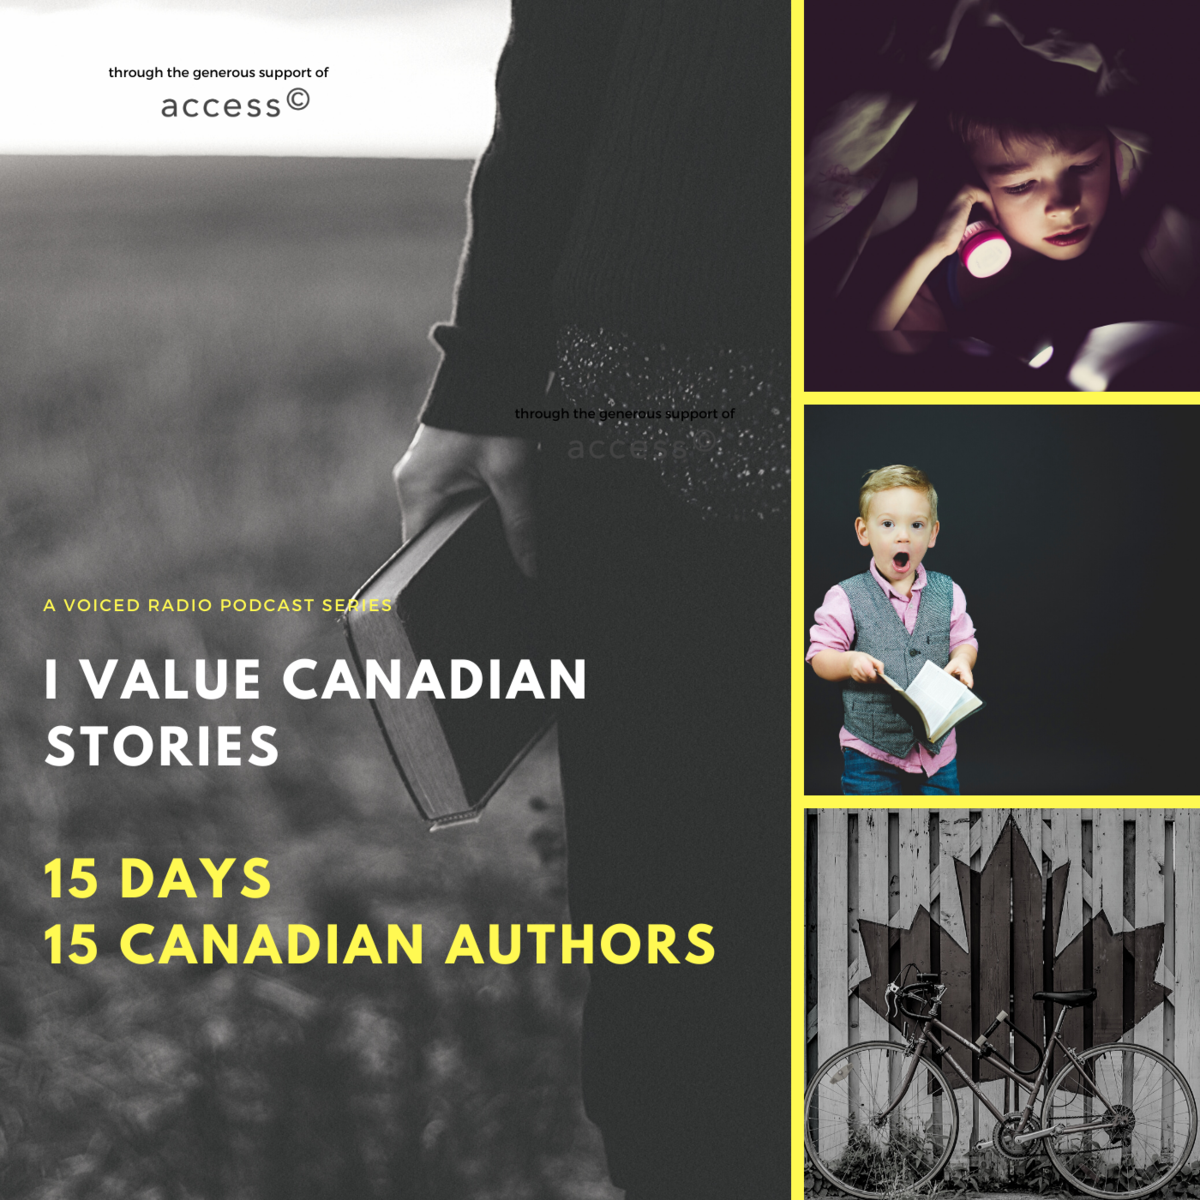 https://voiced.ca/project/i-value-canadian-stories-the-podcast/